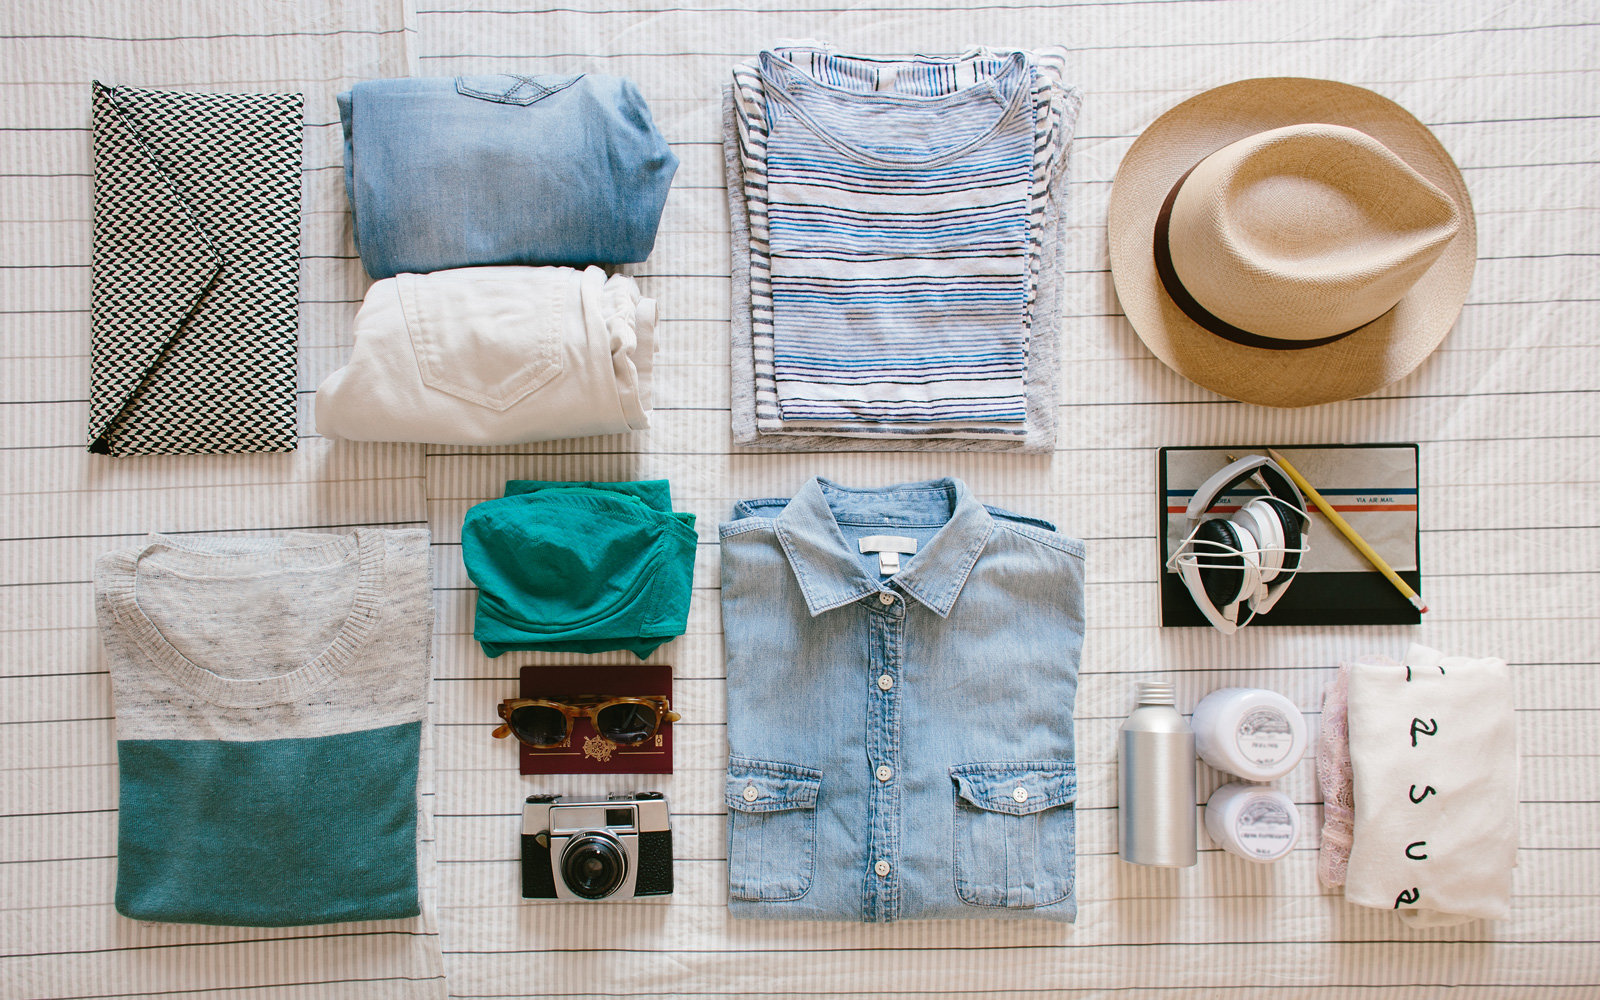 How to travel better